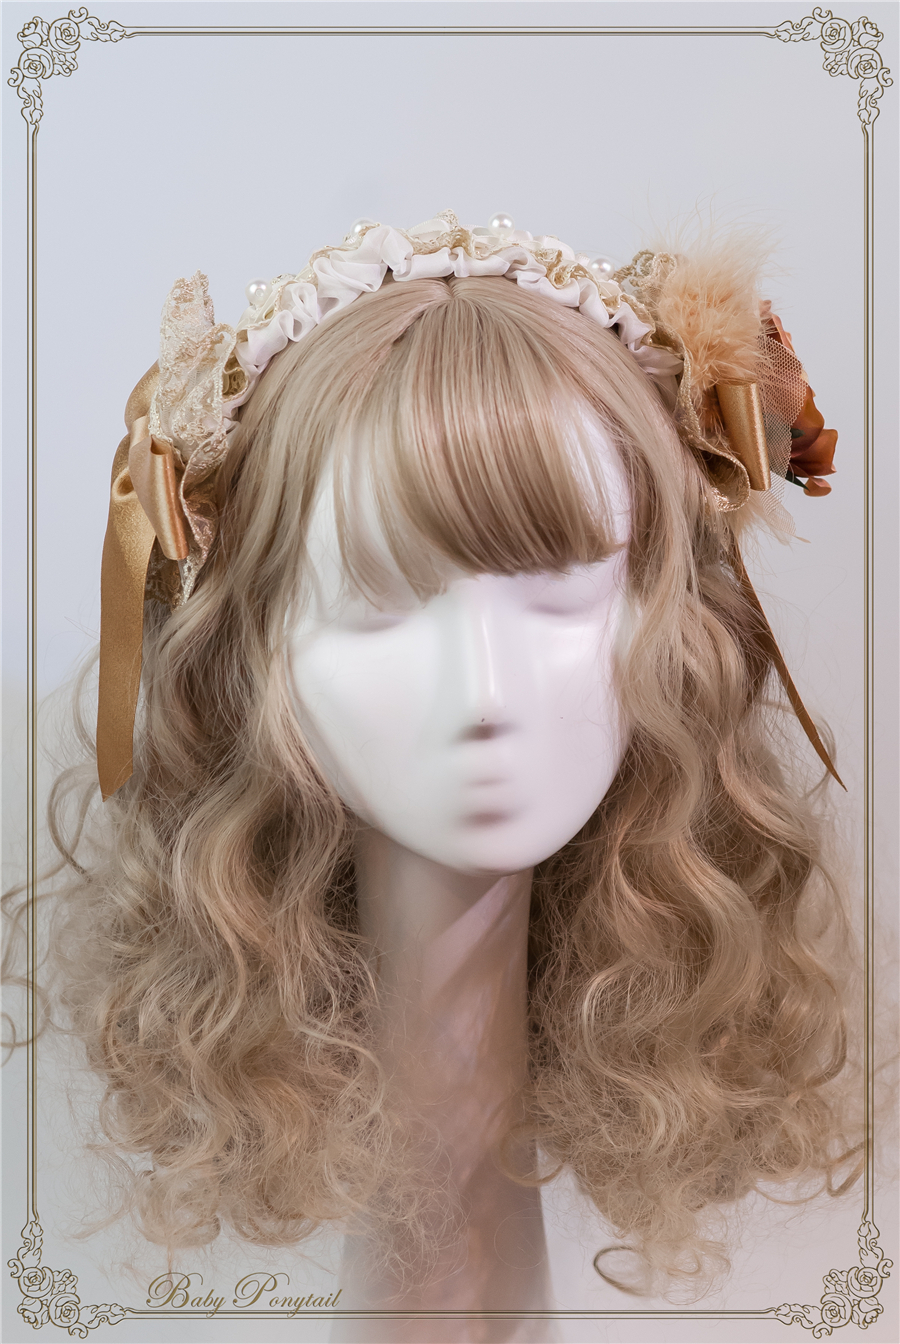 Baby Ponytail_Stock photo_Circus Princess_Rose Head Dress Golden_06.jpg